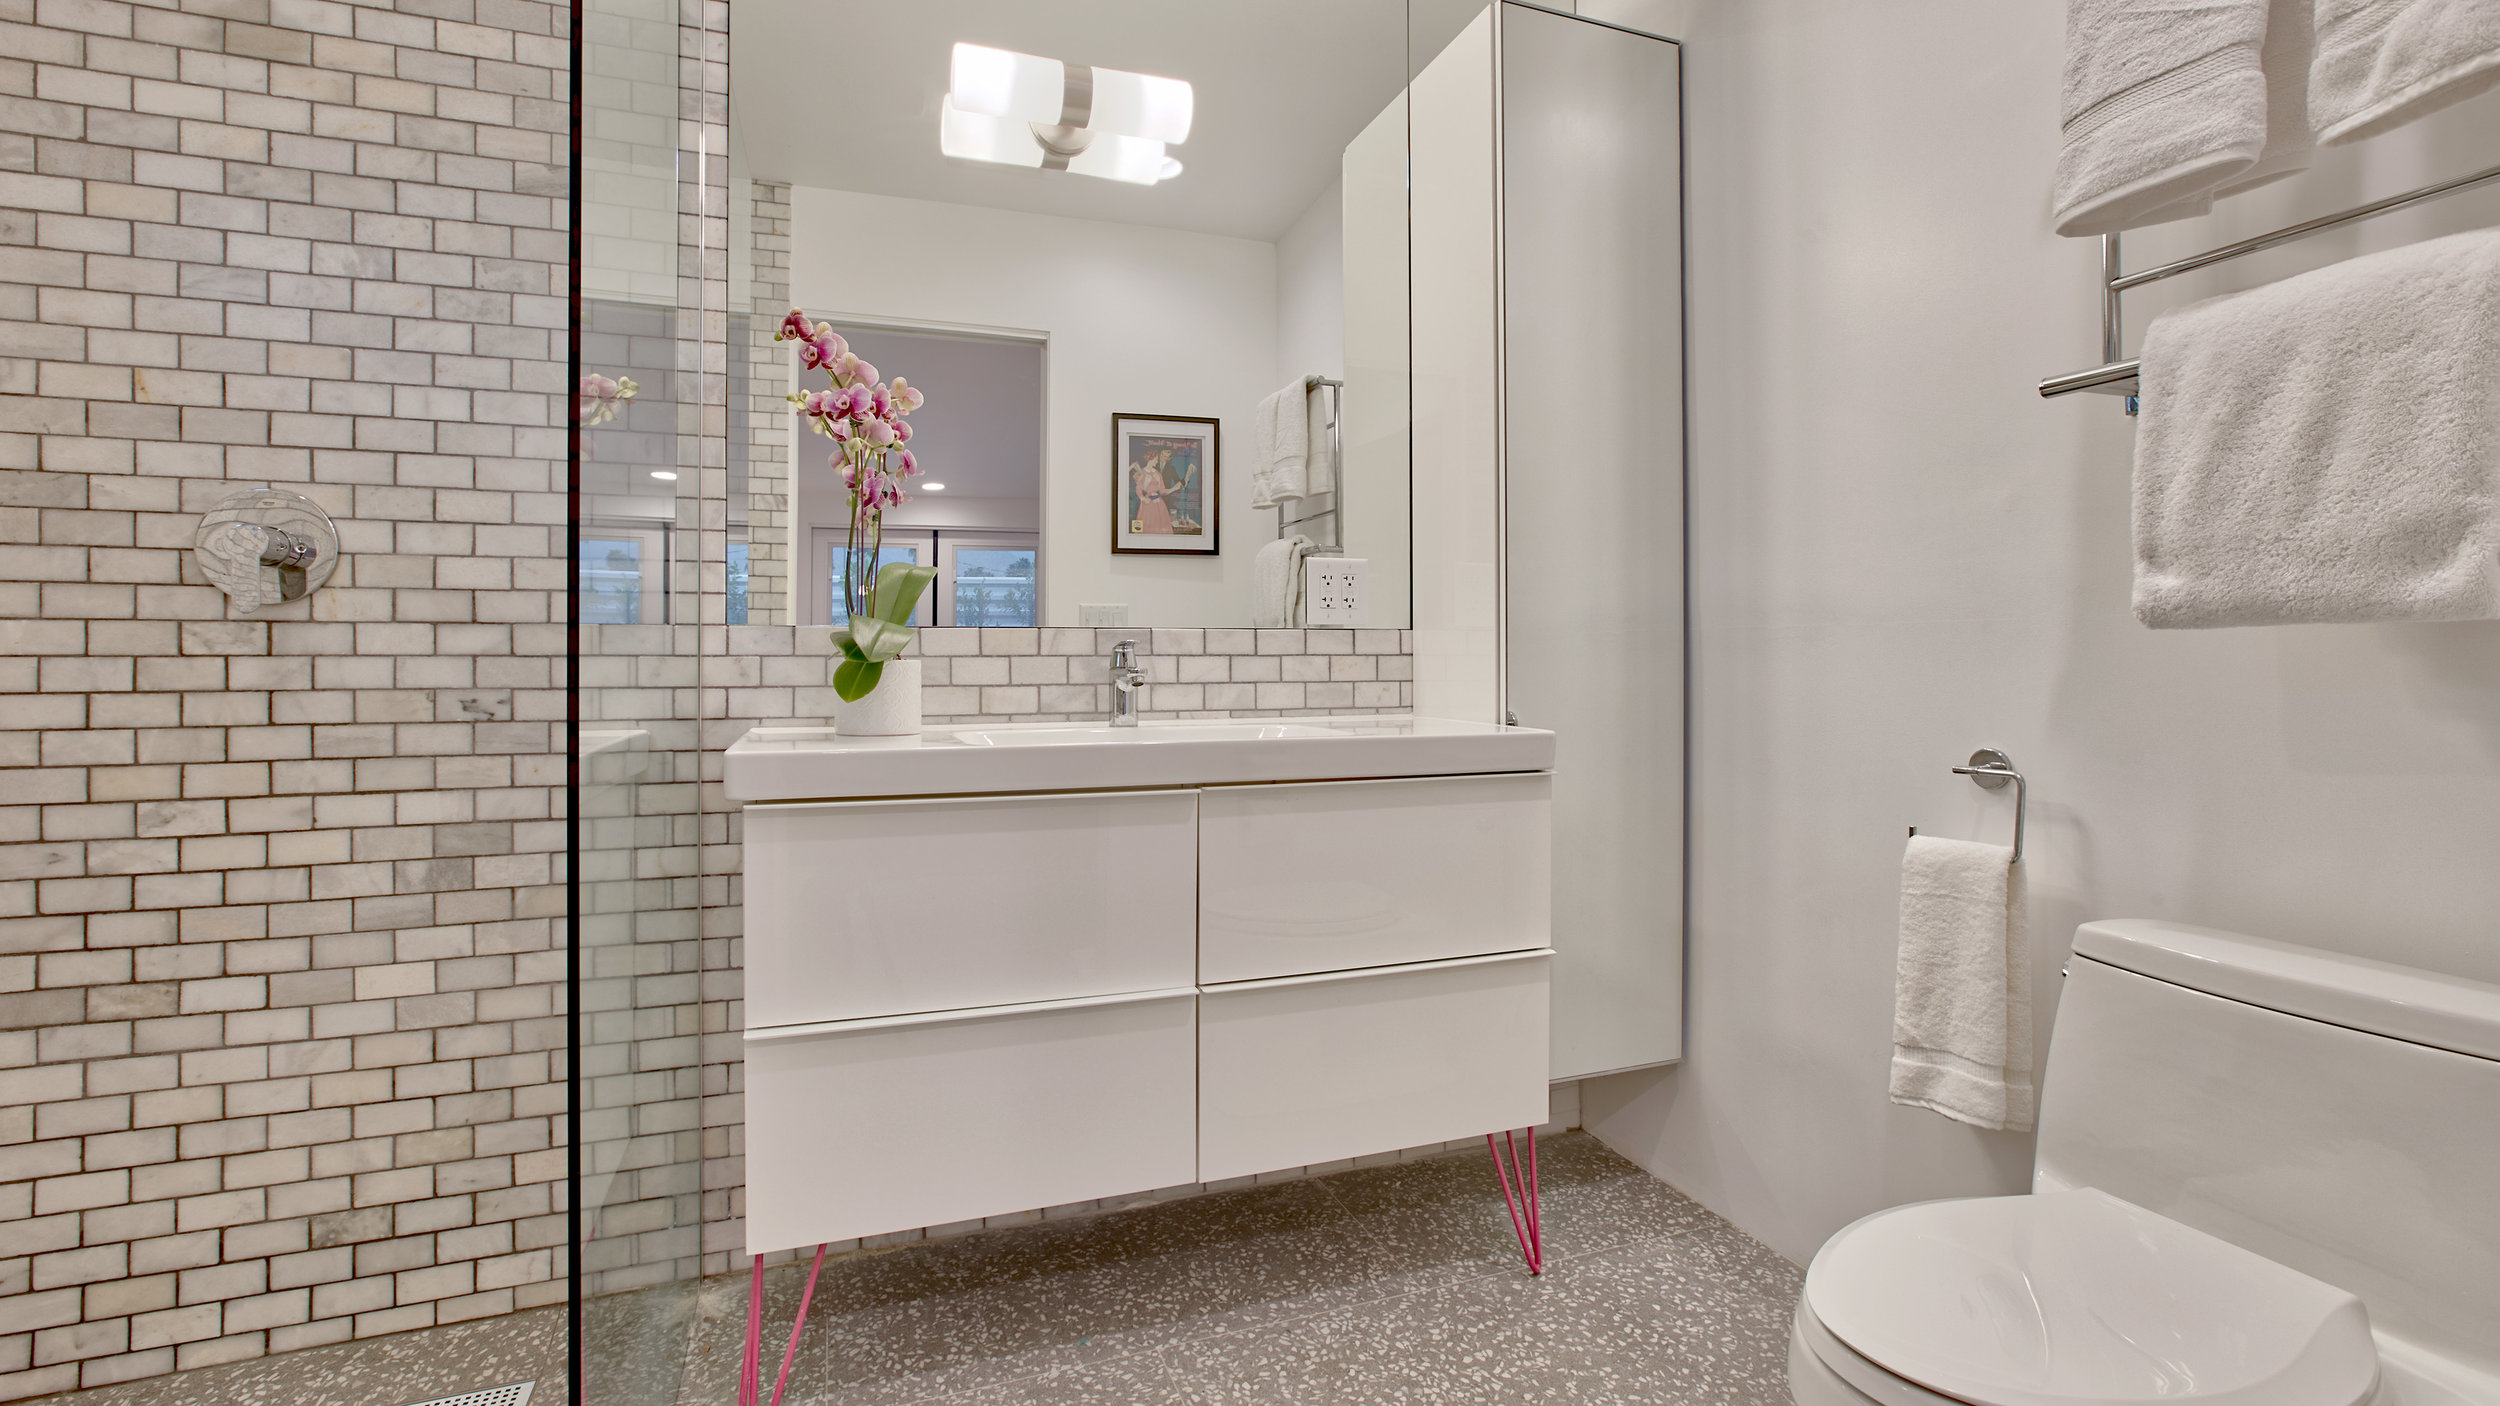 Bathroom #2: the pink bedroom private bathroom. Marble tile, barrier free walk-in shower, large vanity....lots of room!